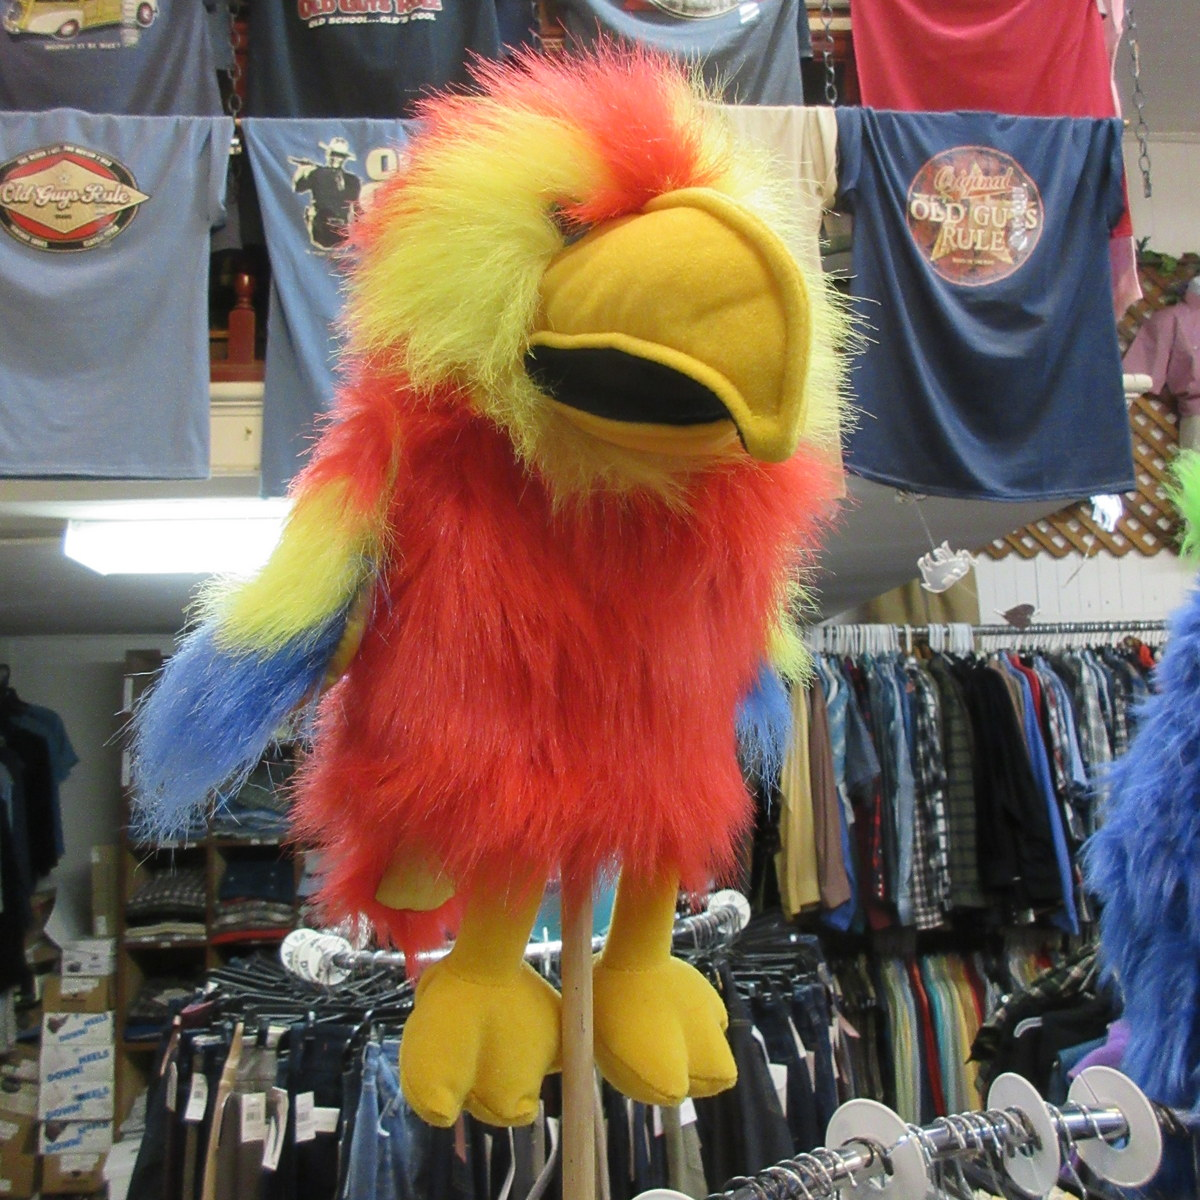 Scarlet Baby Macaw Bird Puppet from The Puppet Company